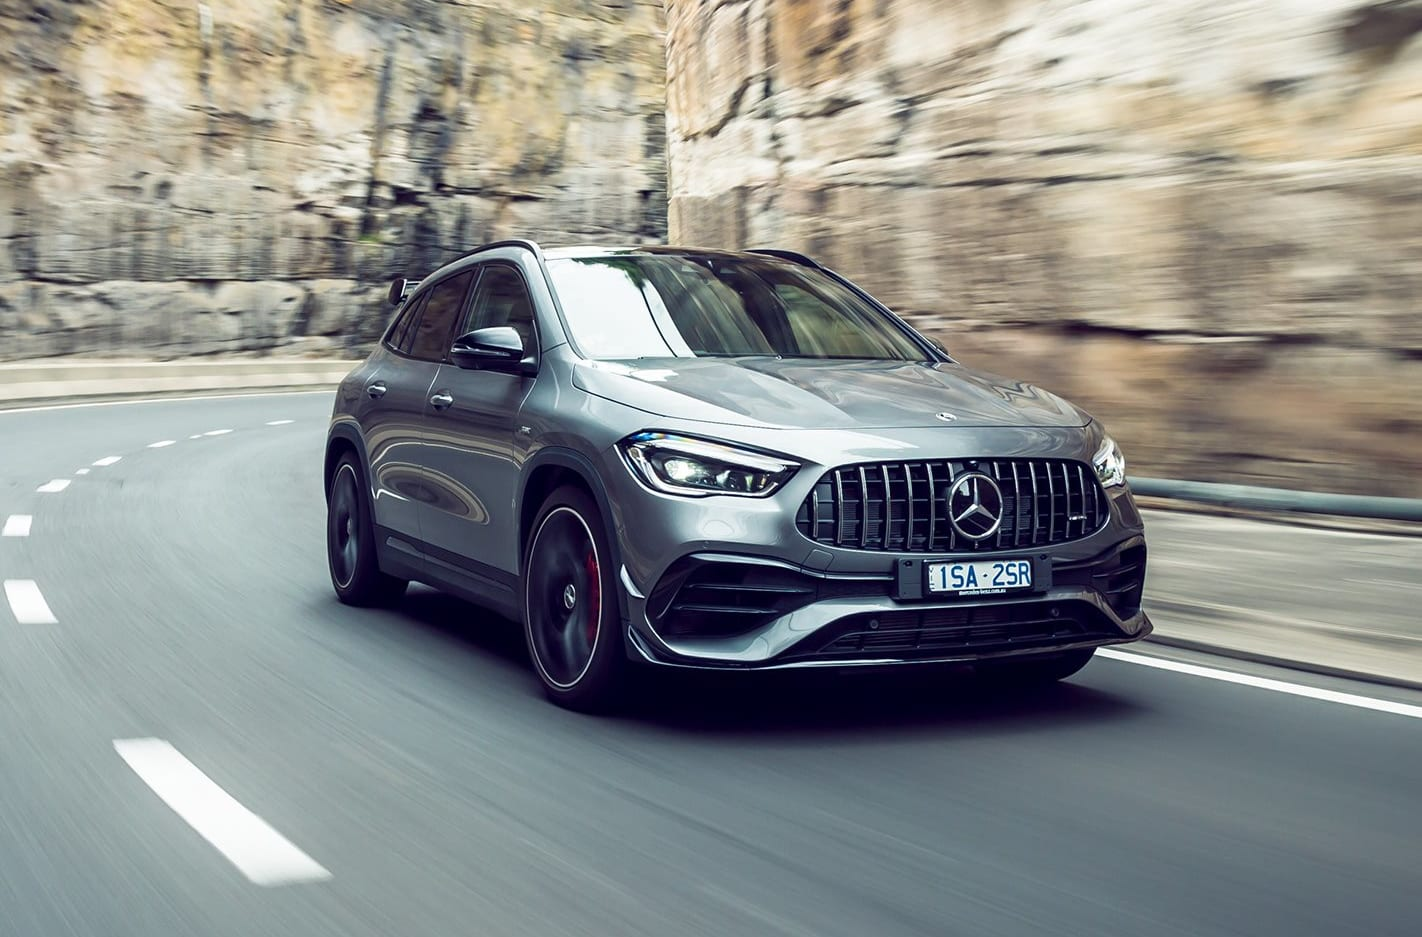 Mercedes-AMG GLA 45 S Review